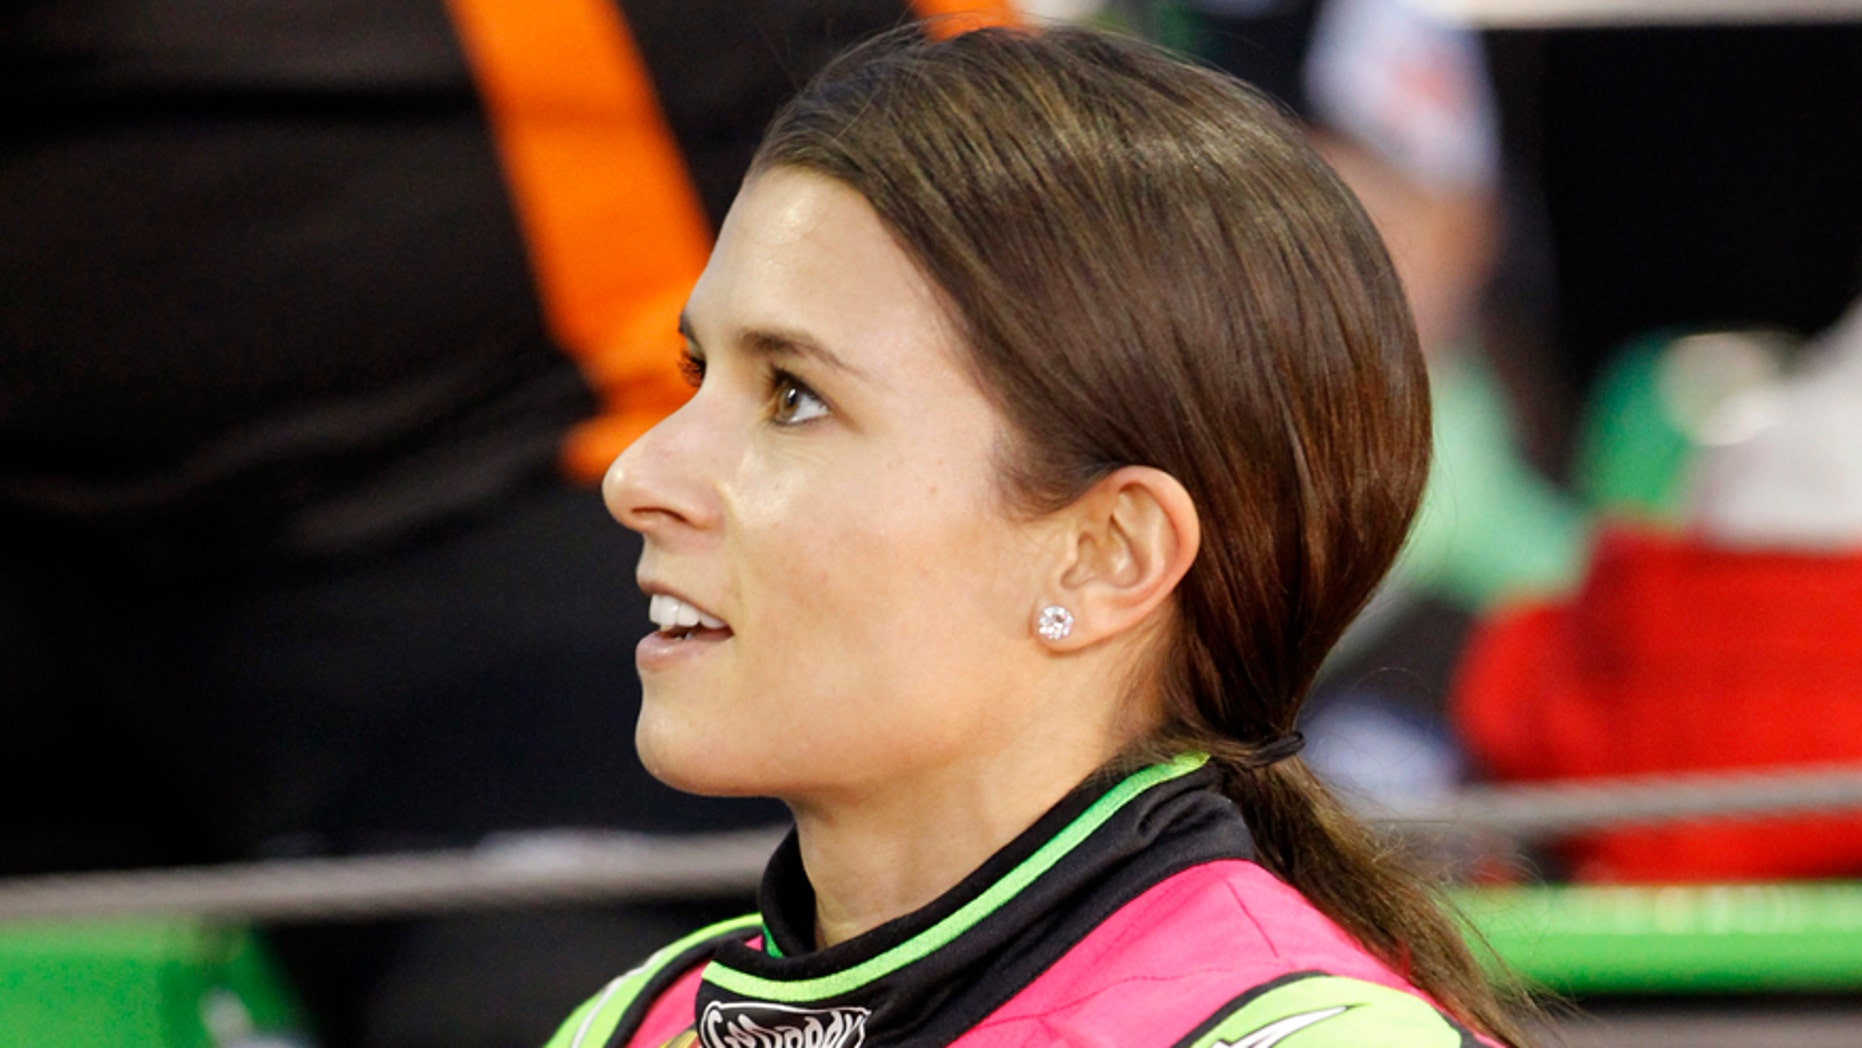 Danica Patrick talks to a crew member before qualifying for Saturday's NASCAR Bank of America Sprint Cup series auto race at Charlotte Motor Speedway in Concord, N.C., Thursday, Oct. 9, 2014. (AP Photo/Terry Renna)